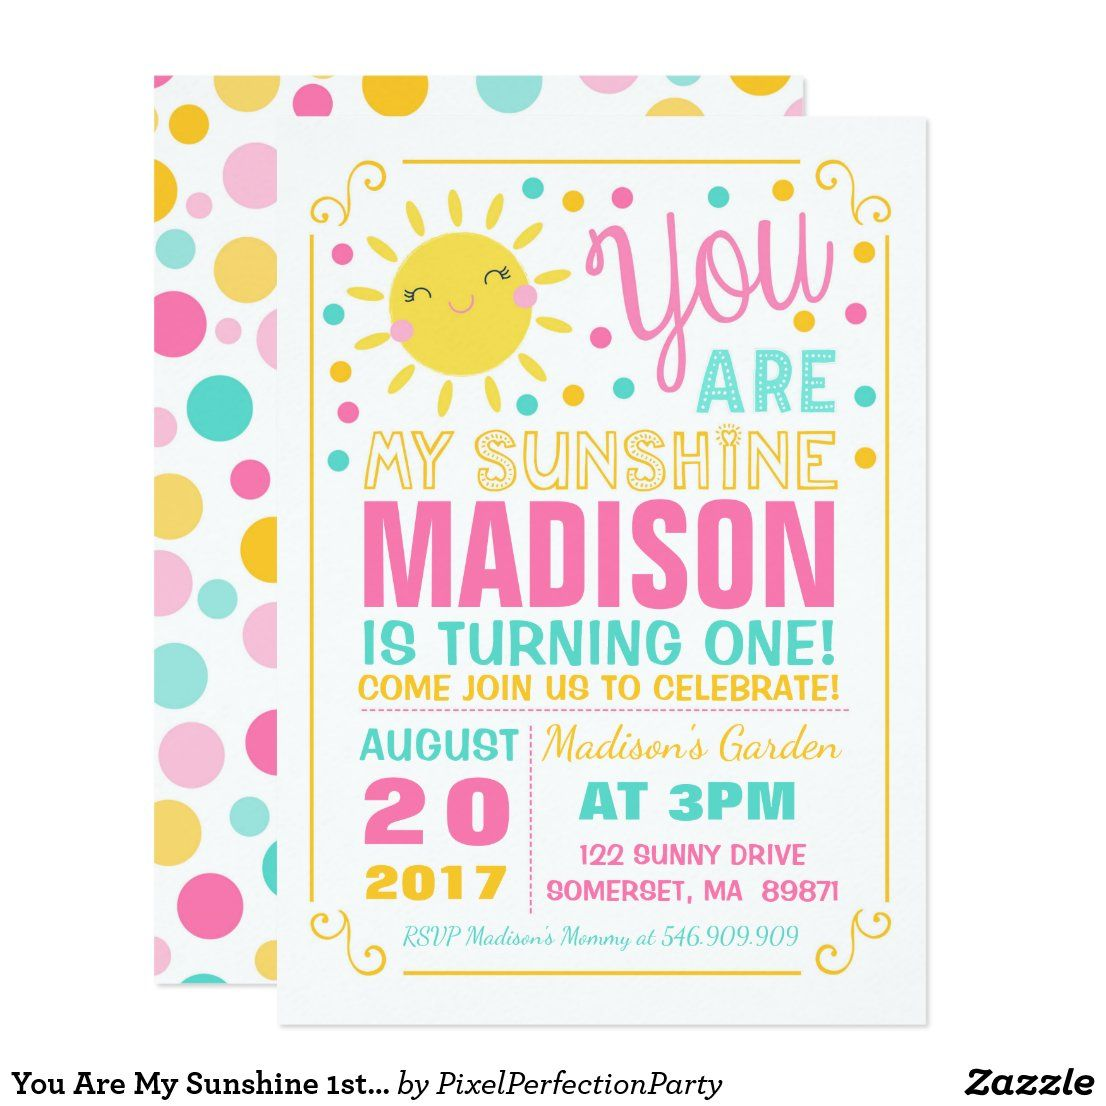 You Are My Sunshine 1st Birthday Party Invitation Zazzle